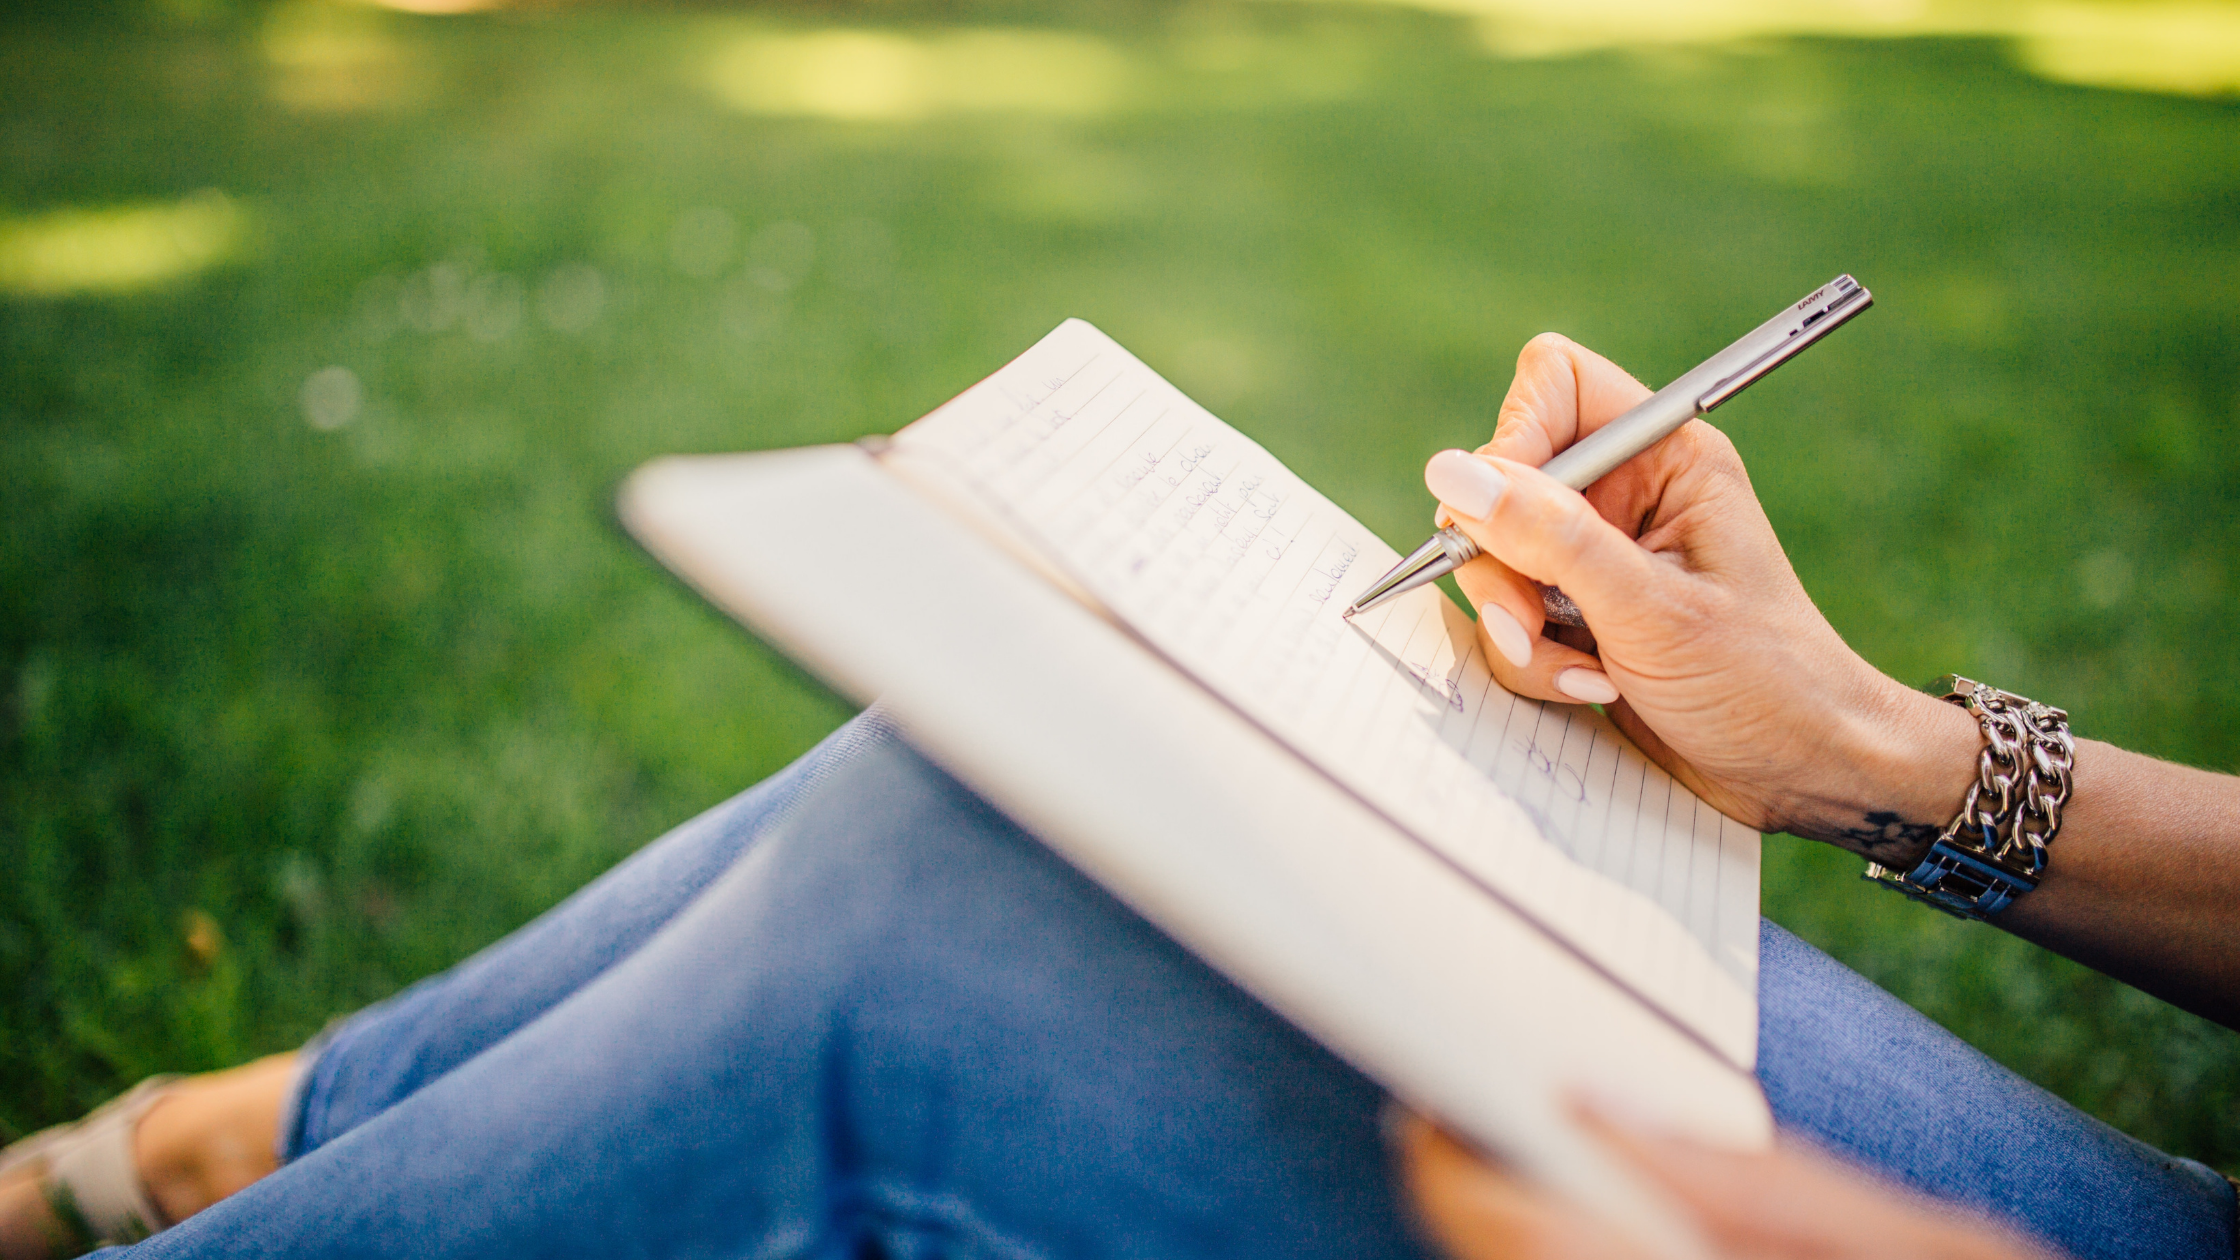 6 Reasons Why Writing Is Good For Your Mental Health